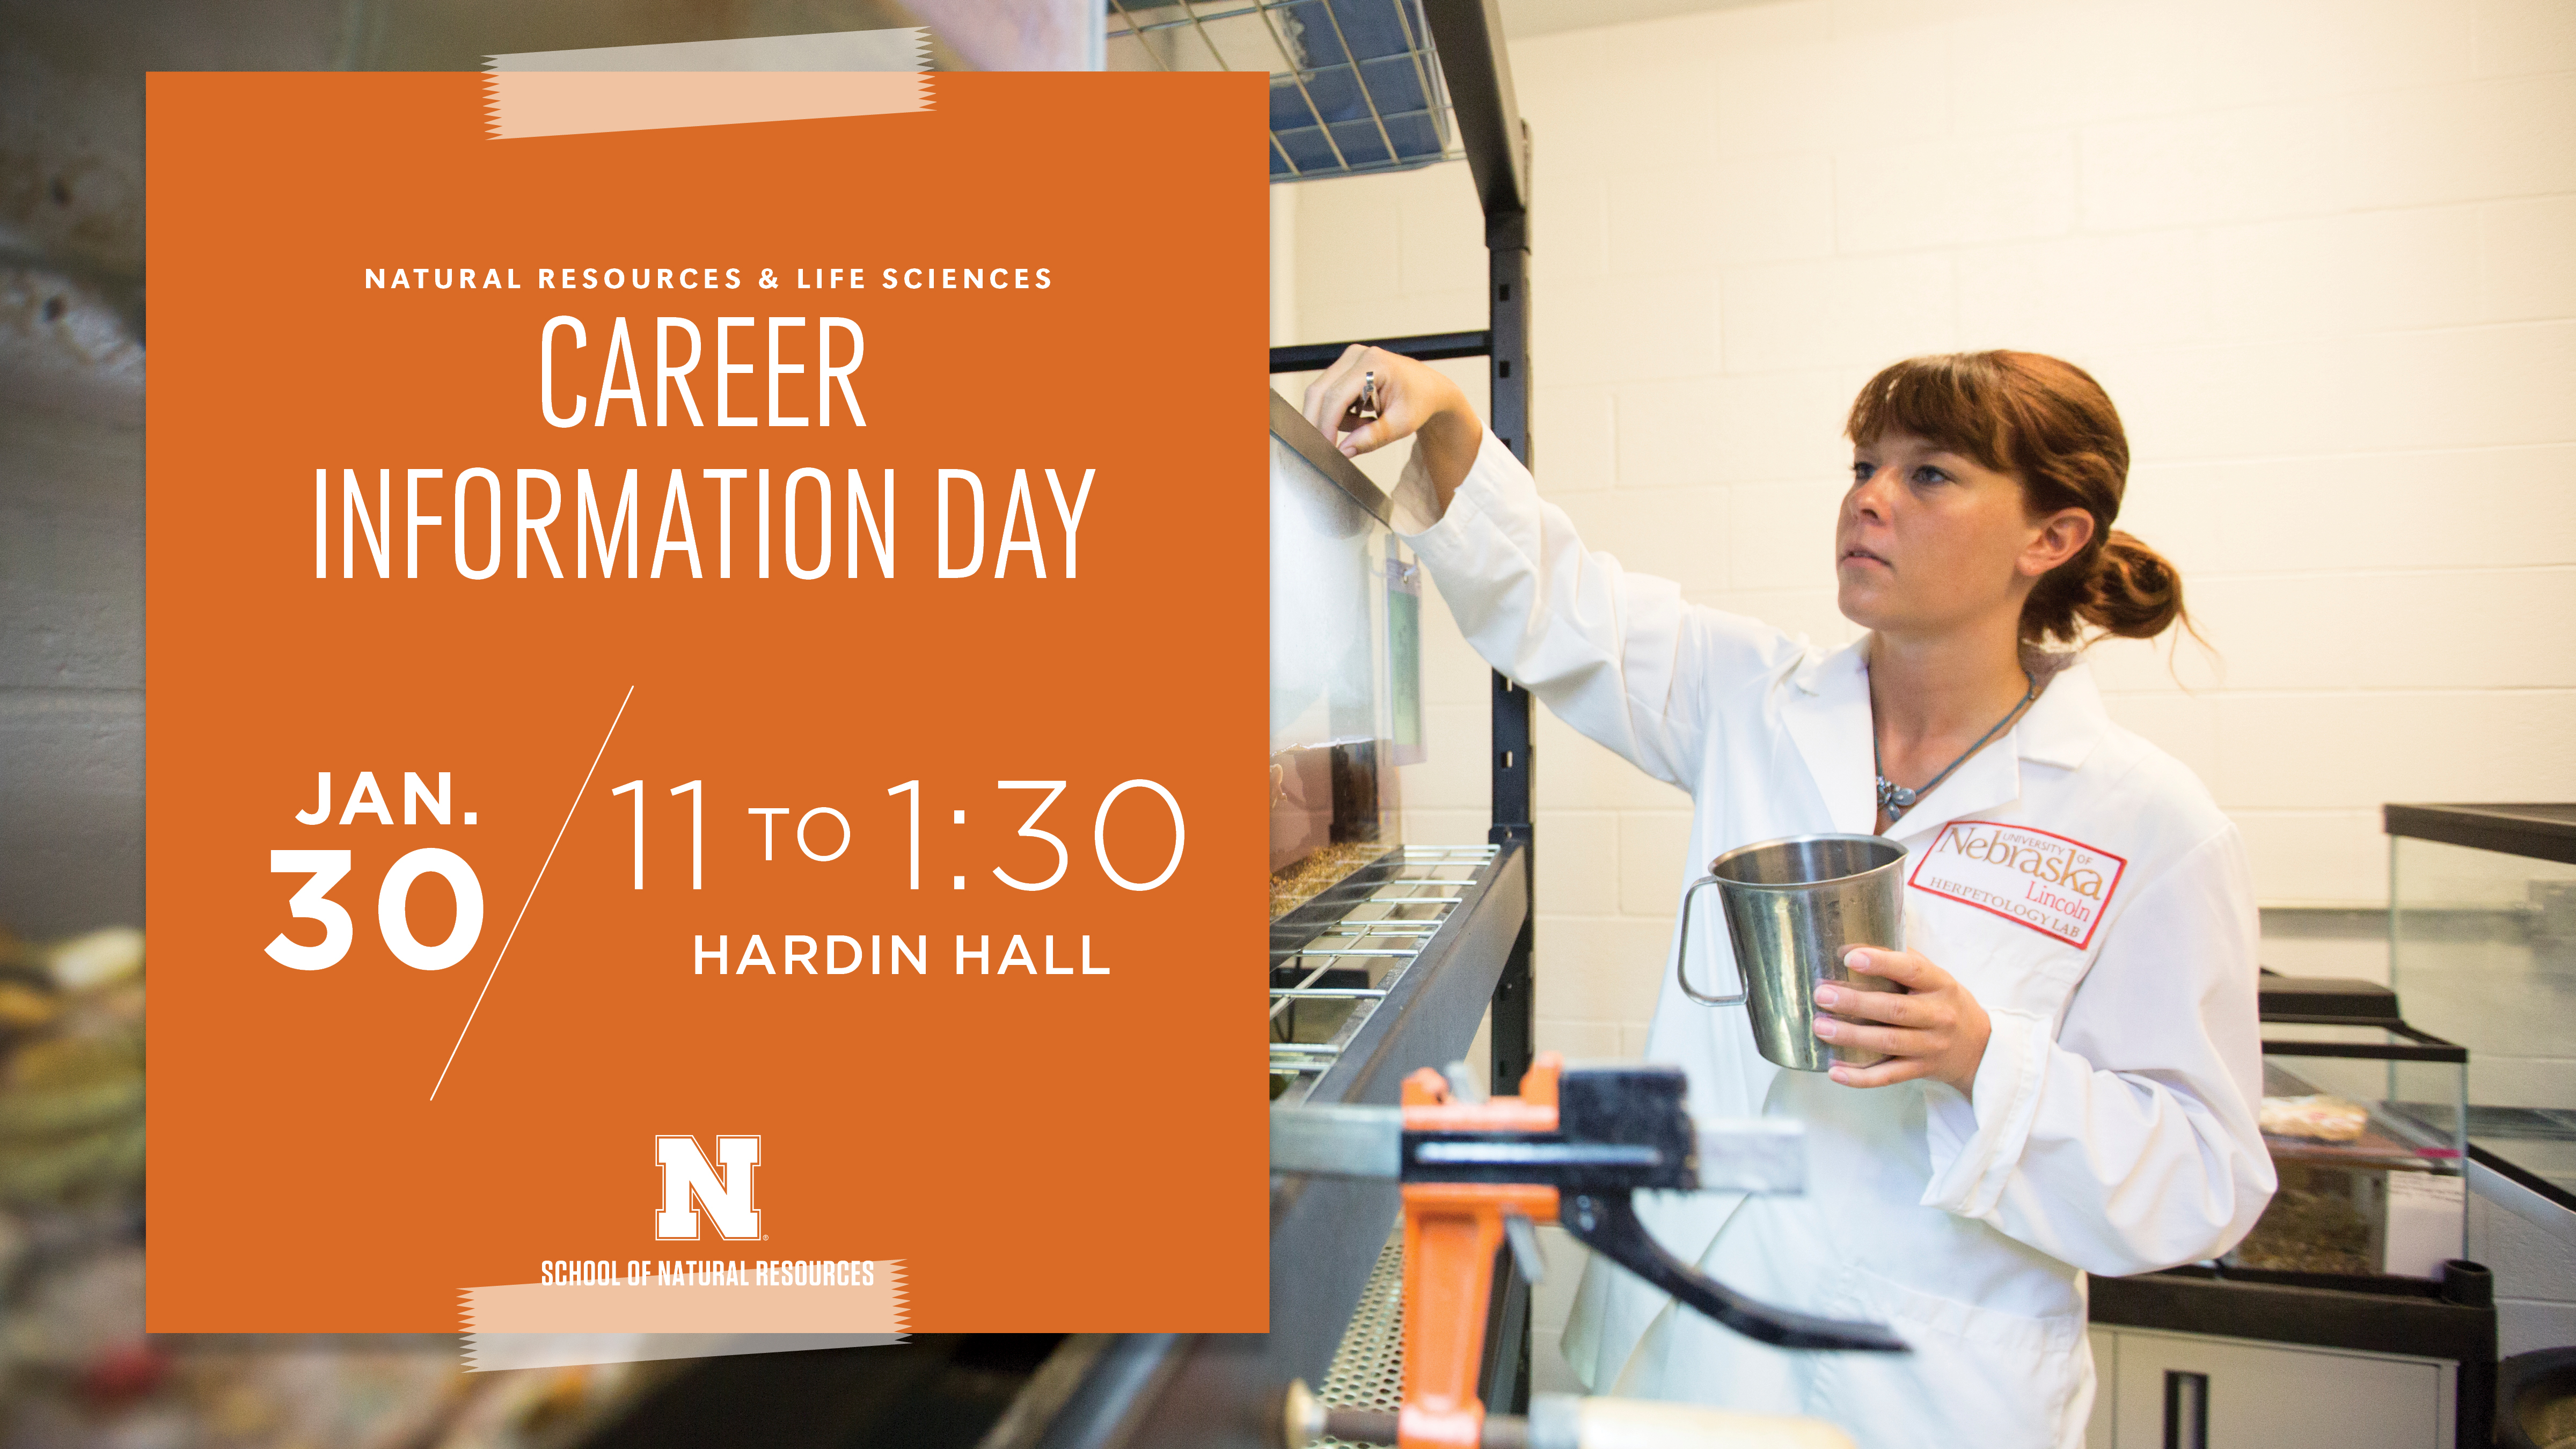 Career Information Day is set for 11 a.m. to 1:30 p.m. Jan. 30 in Hardin Hall.